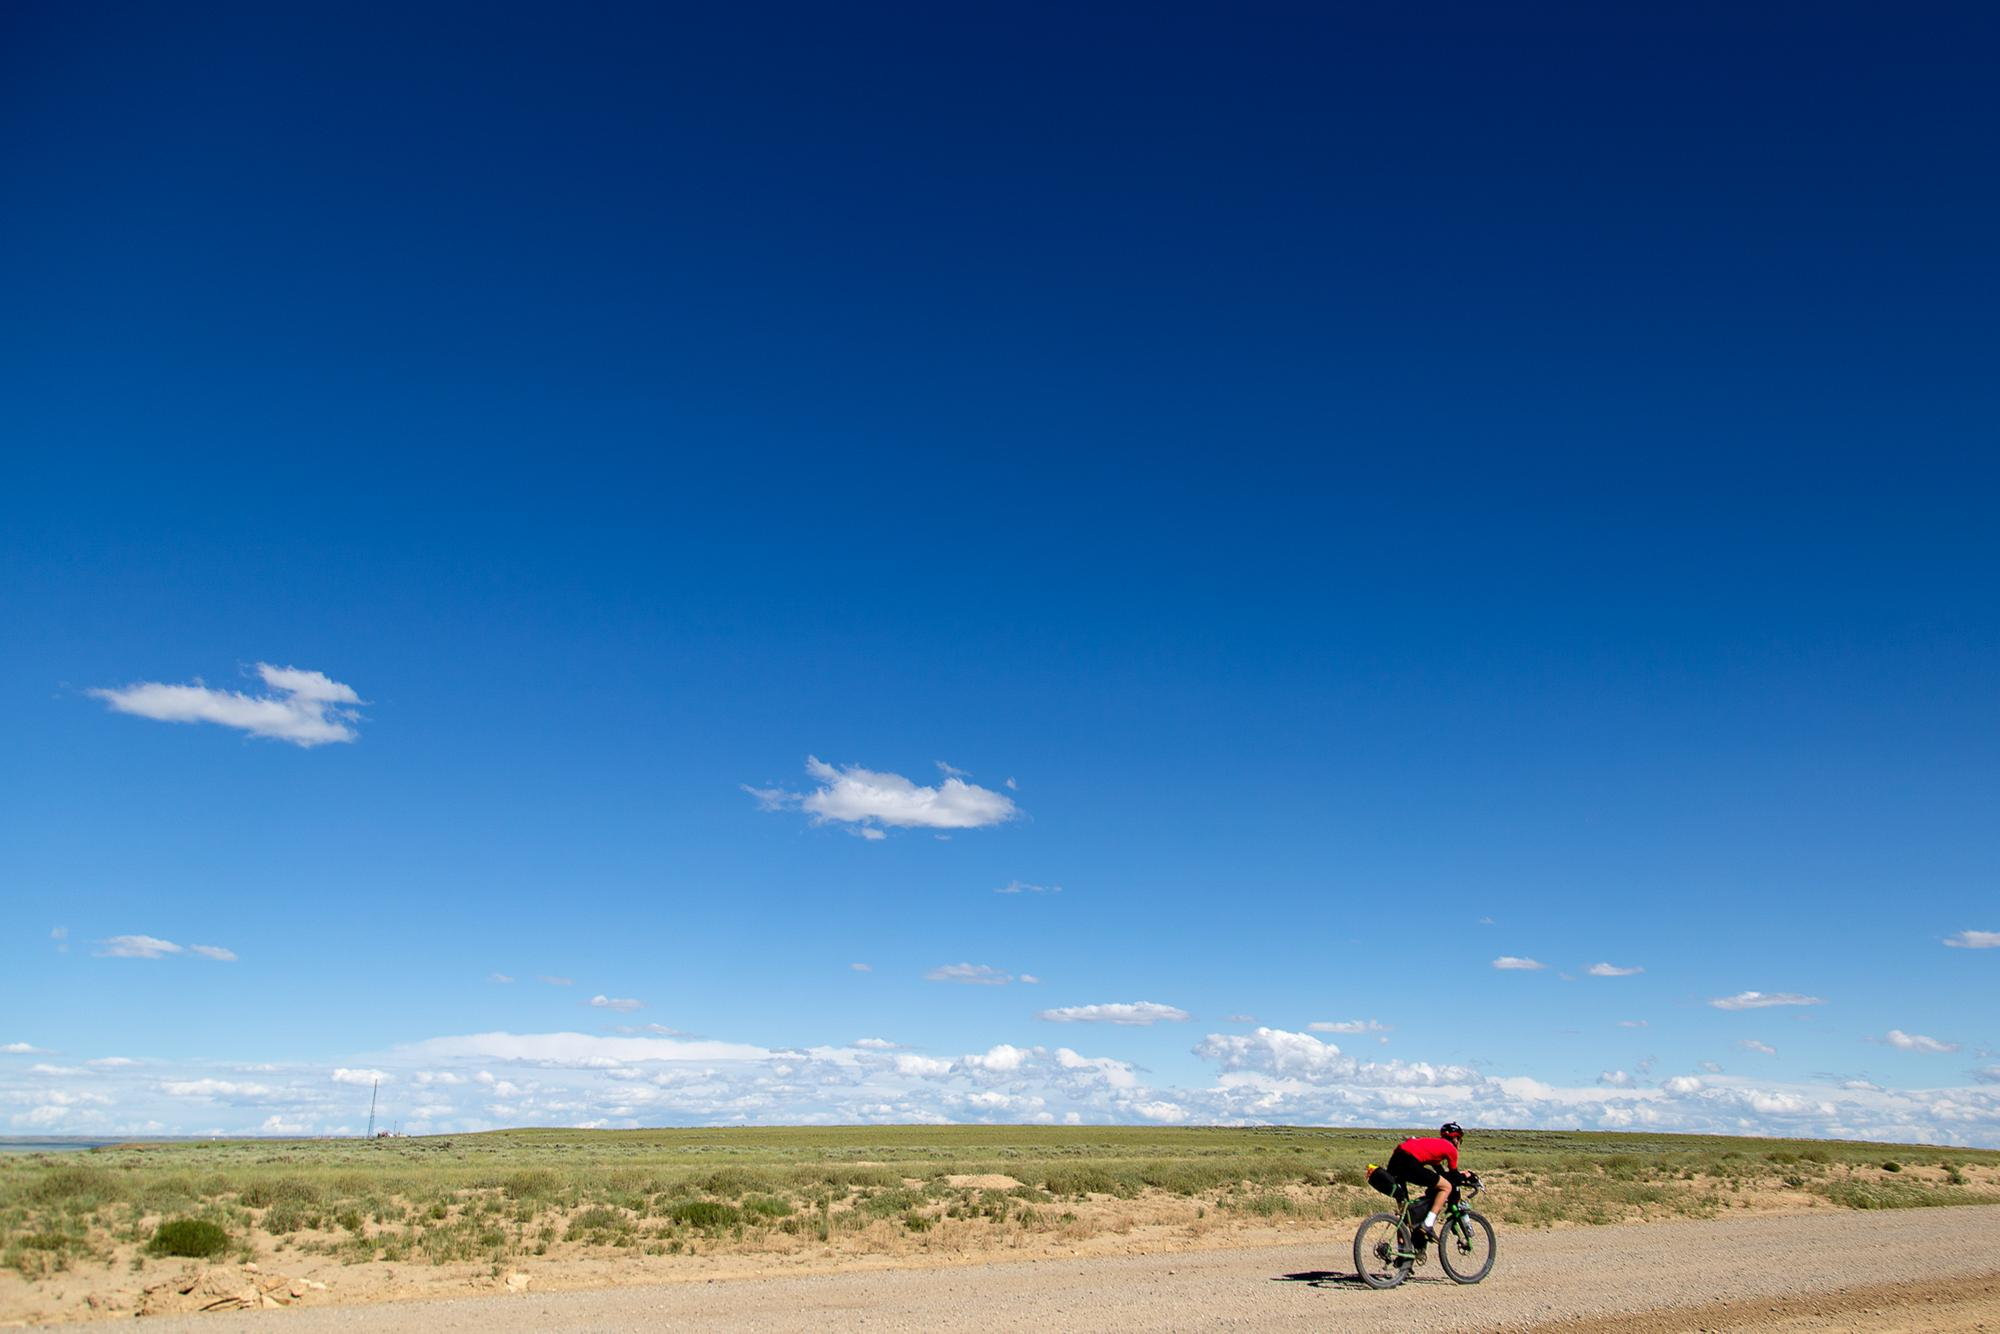 Josh Ibbett rides towards Wamsutter, Wyoming. (Rugile Kaladyte)